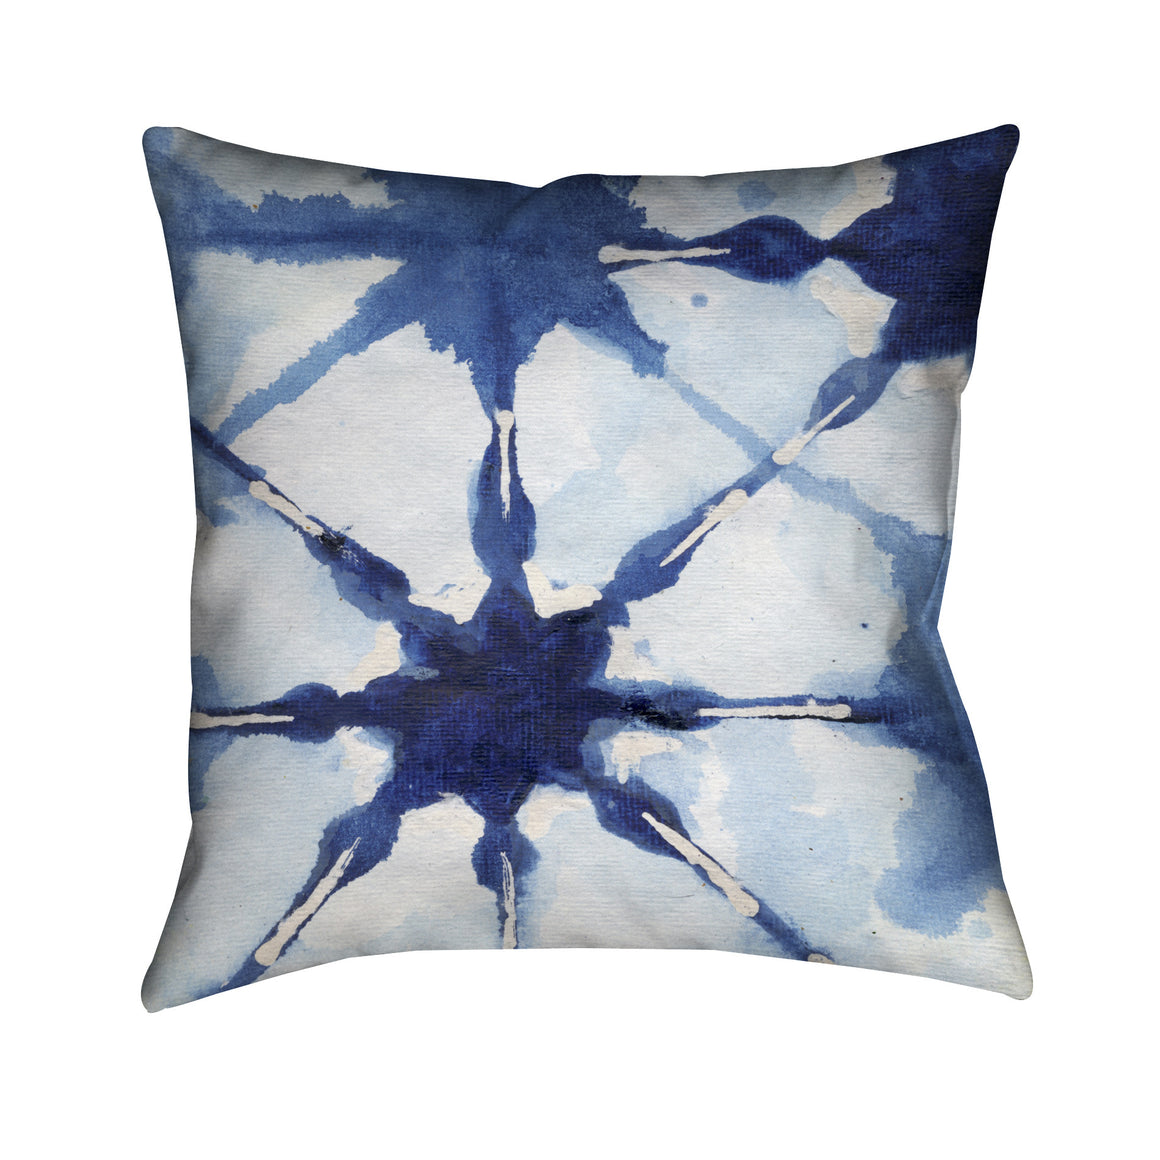 Shibori II Outdoor Decorative Pillow